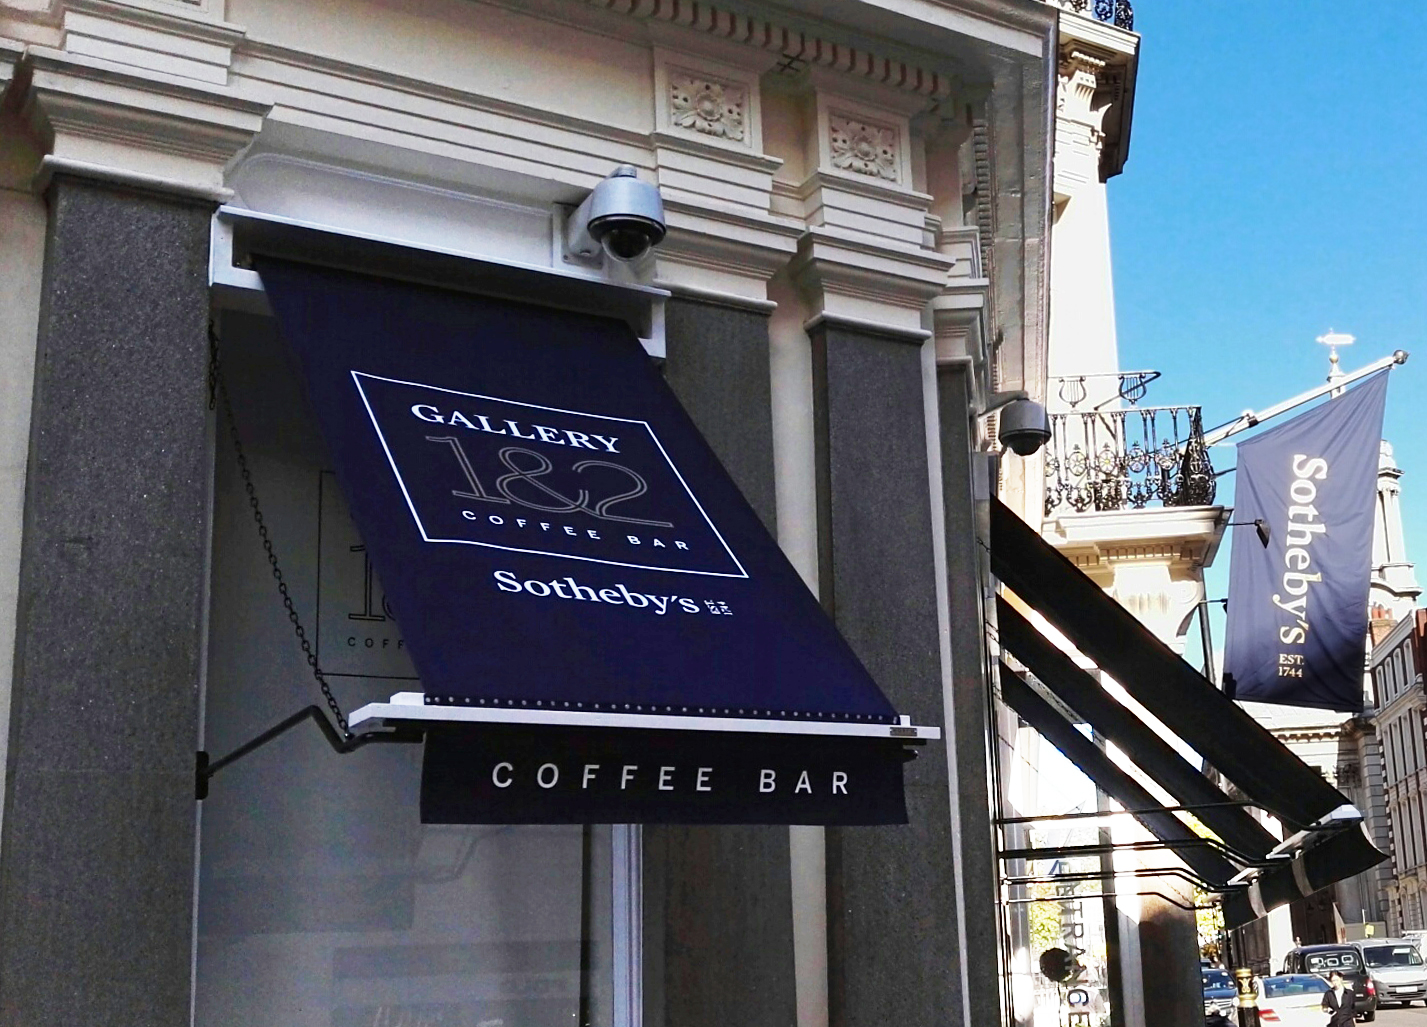 sotheby's cafe awning3